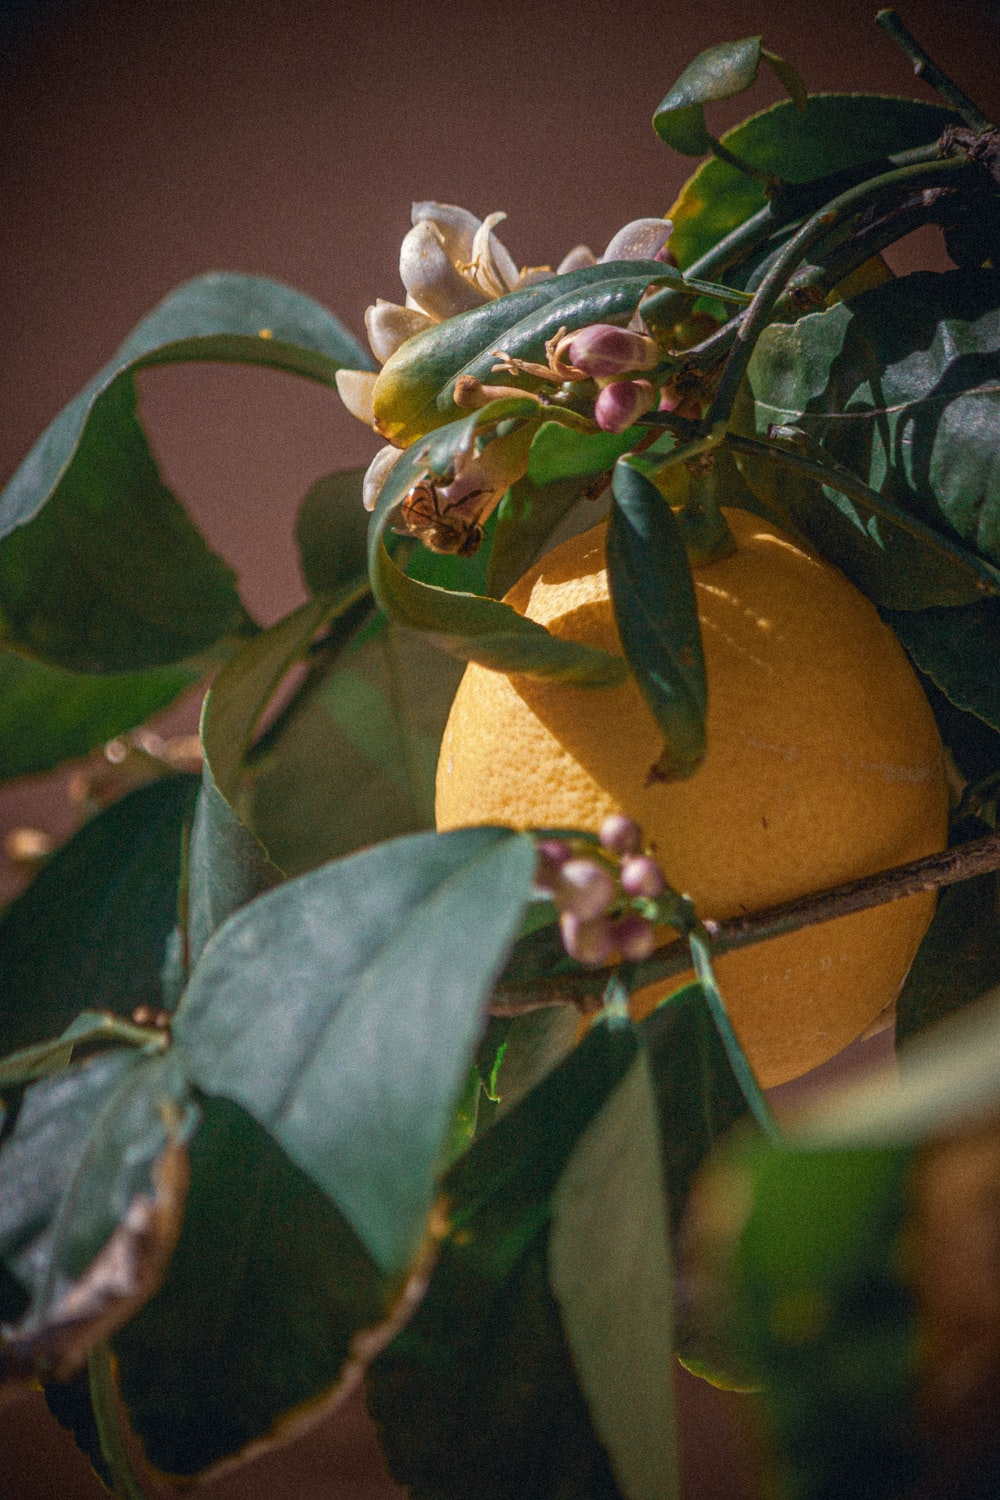 yellow lemon fruit with green leaves